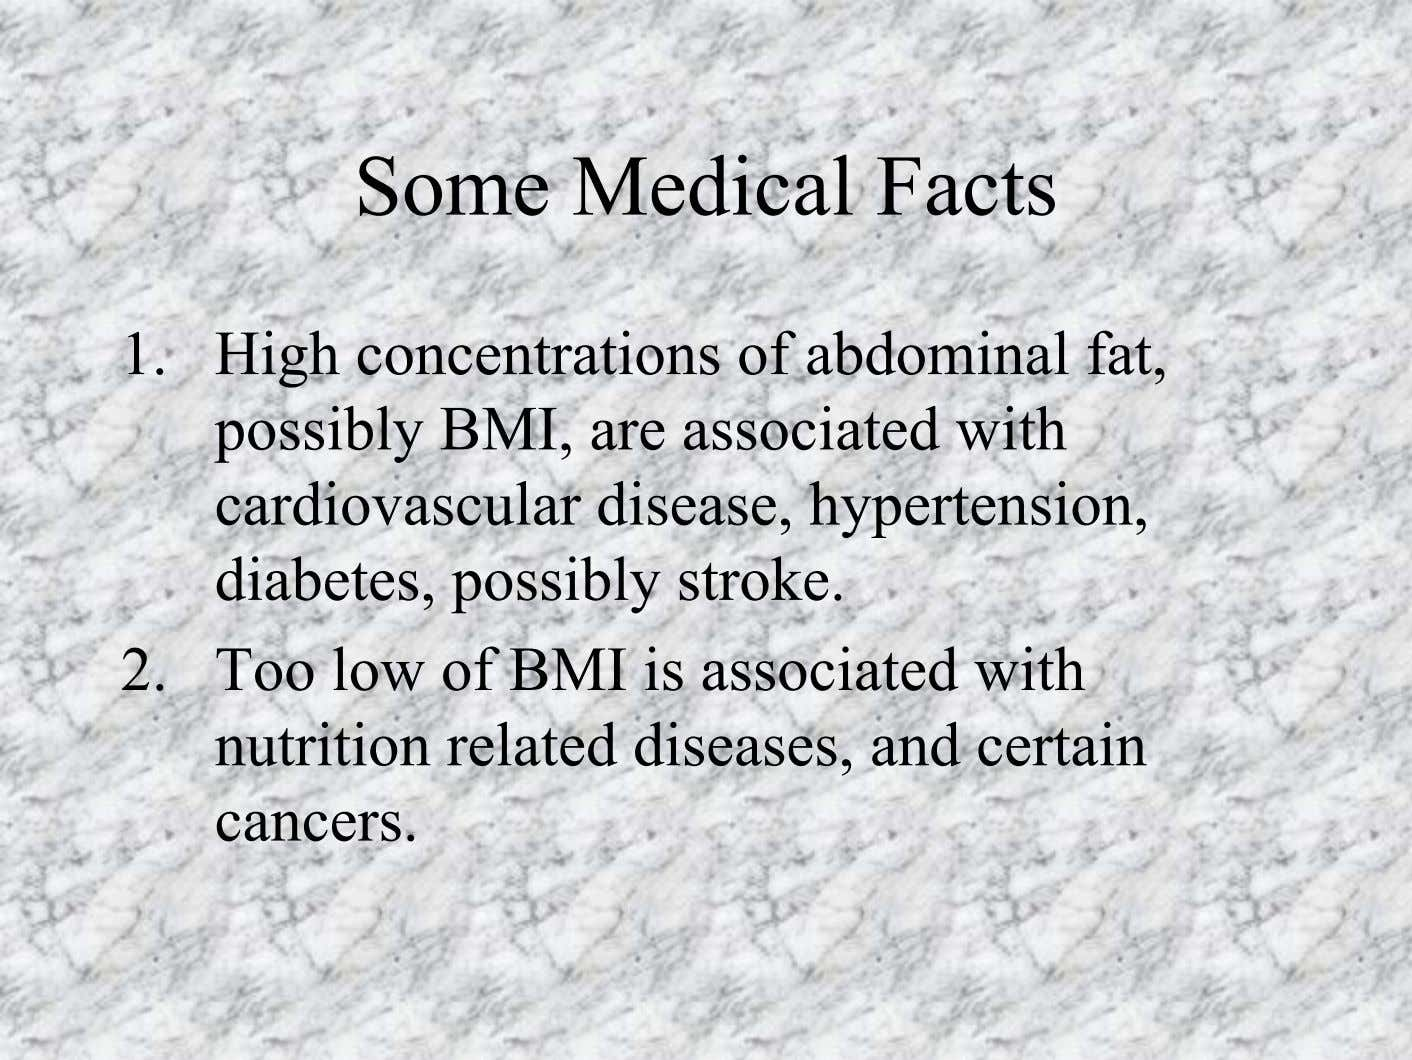 Some Medical Facts 1. High concentrations of abdominal fat, possibly BMI, are associated with cardiovascular